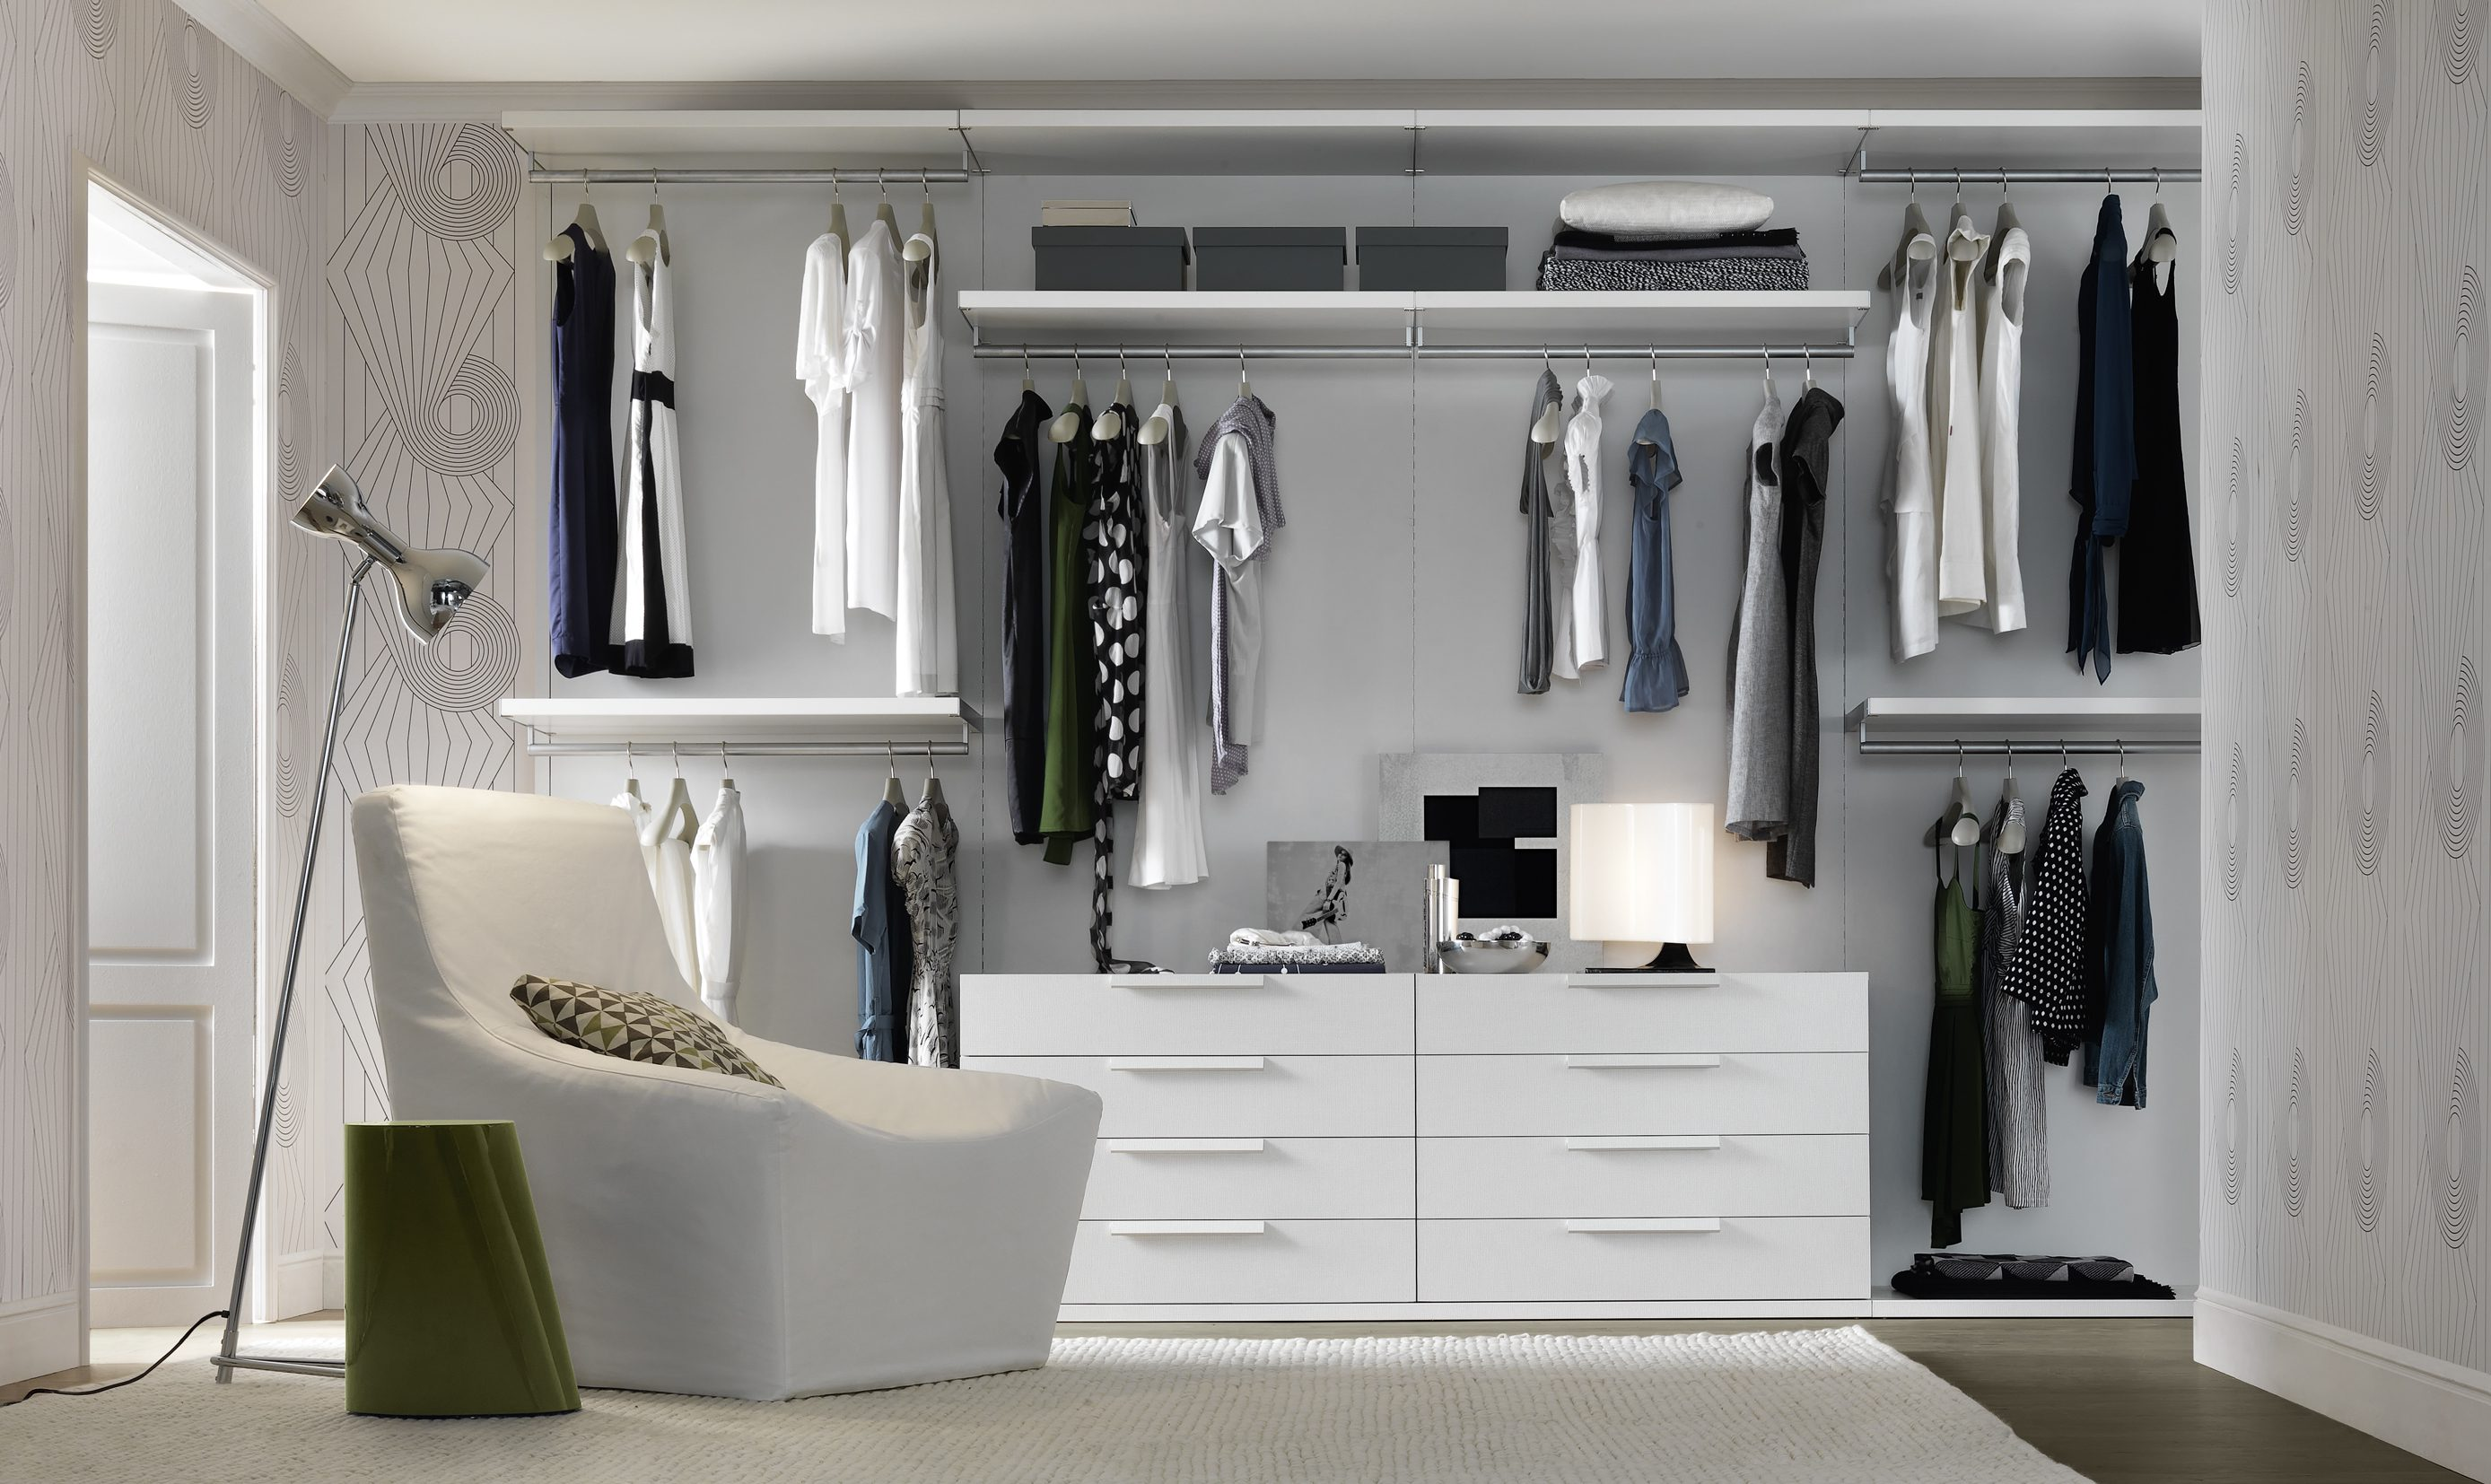 Schlafzimmerschrank modern  Find beautiful detail and design work at California Closets